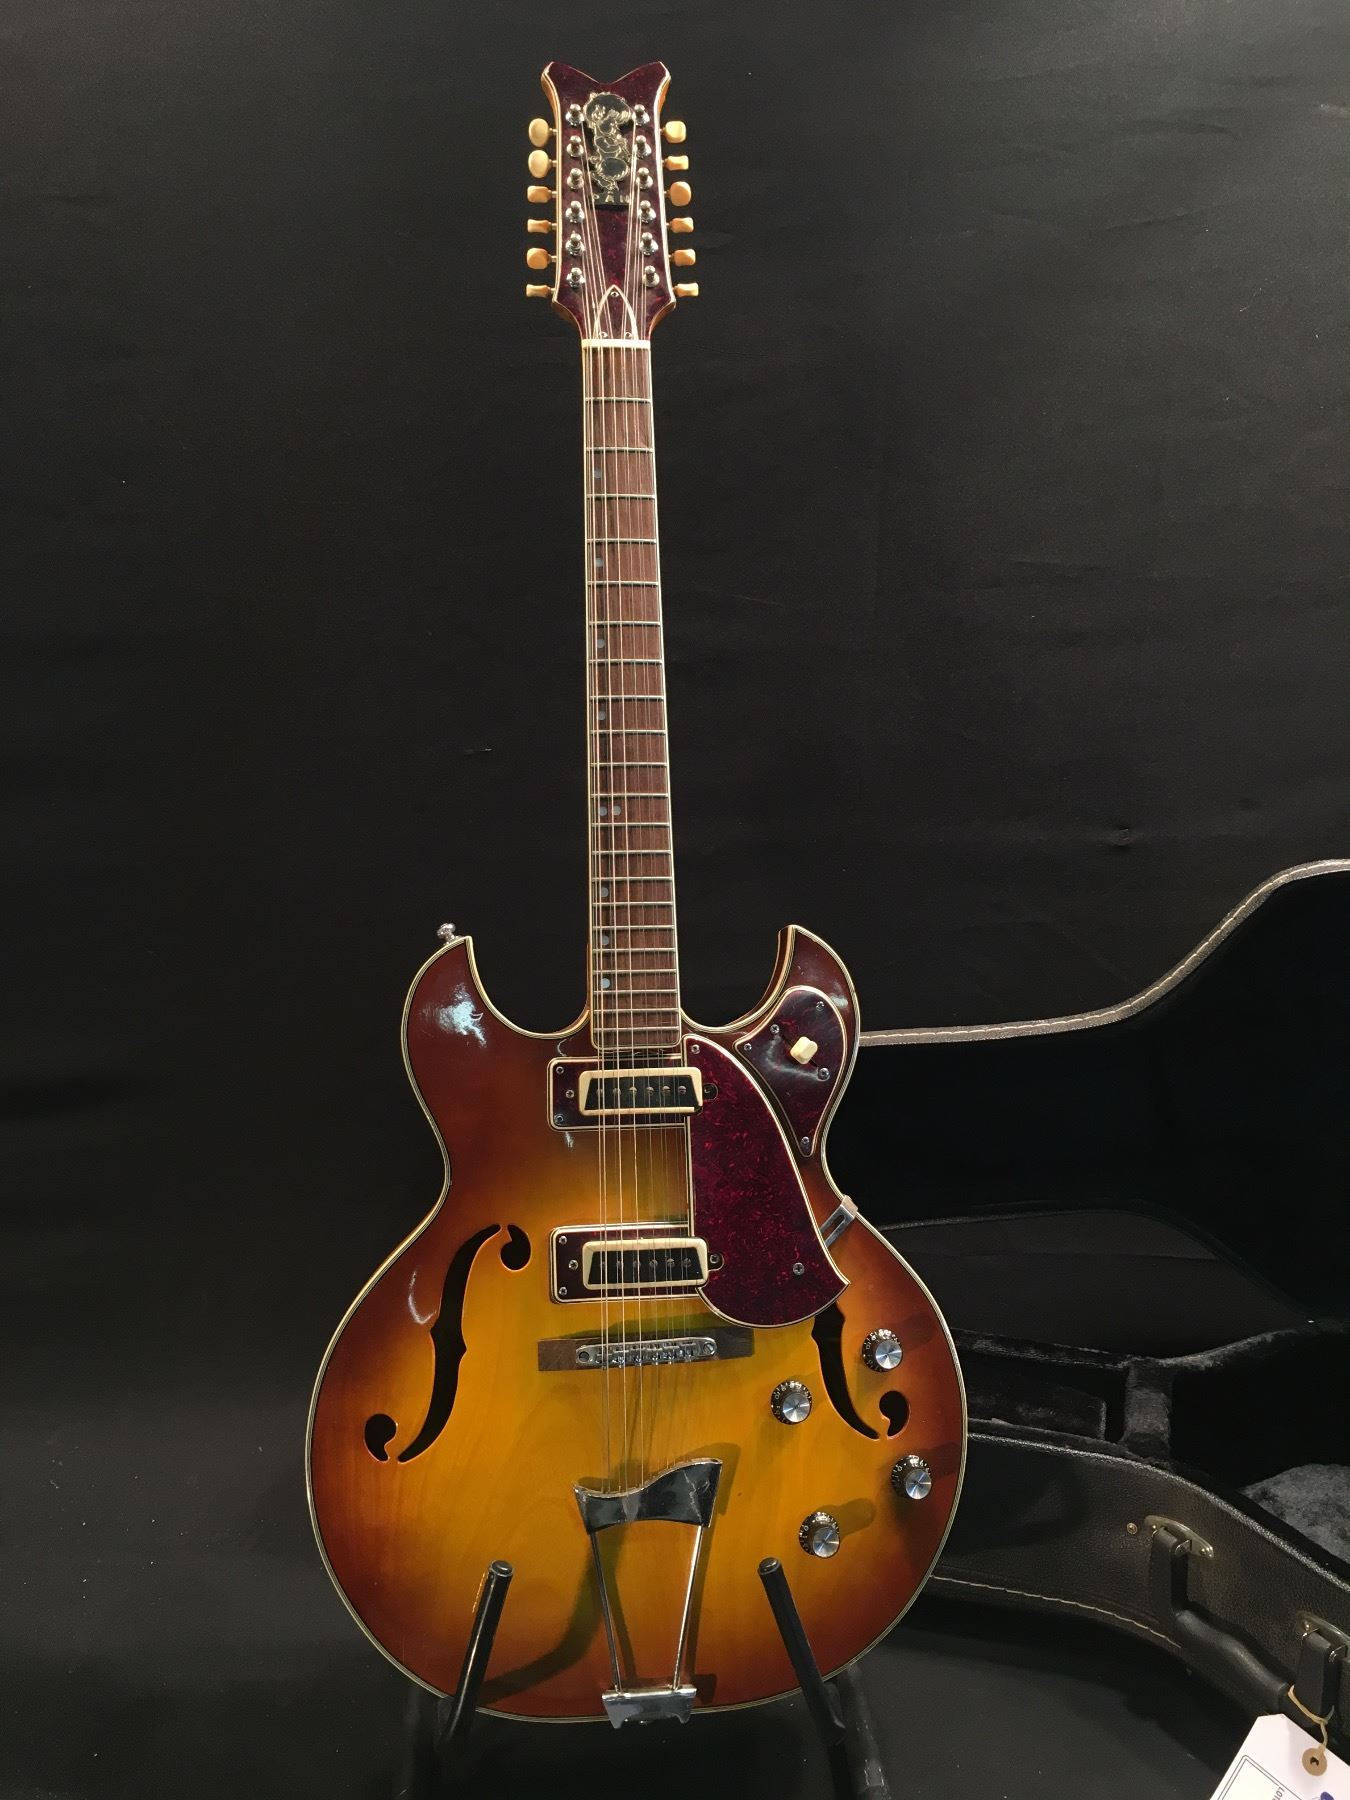 What vintage hollow body electric